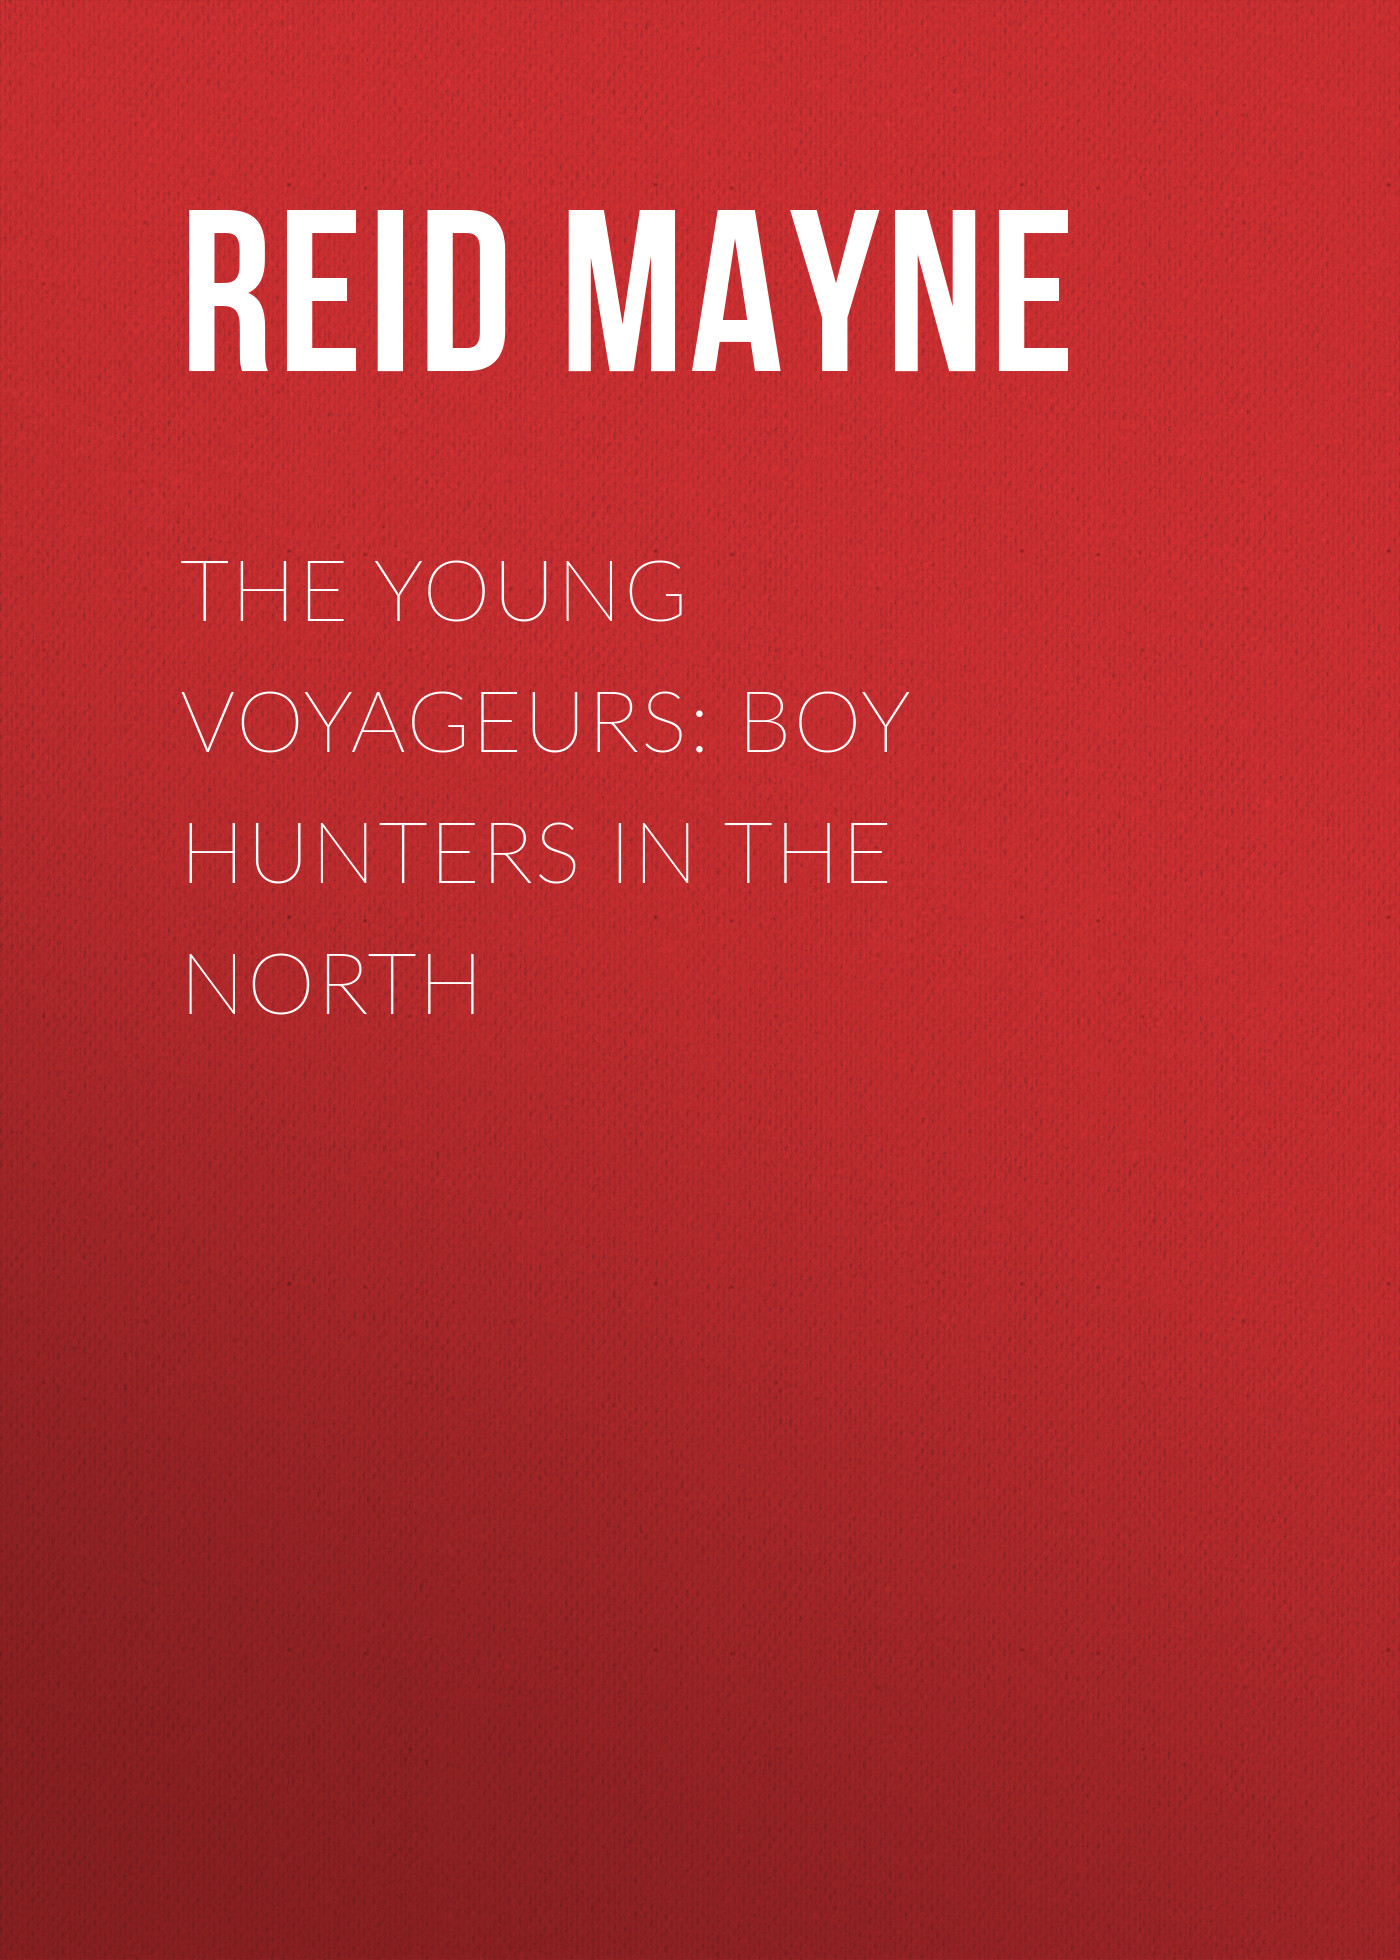 The Young Voyageurs: Boy Hunters in the North